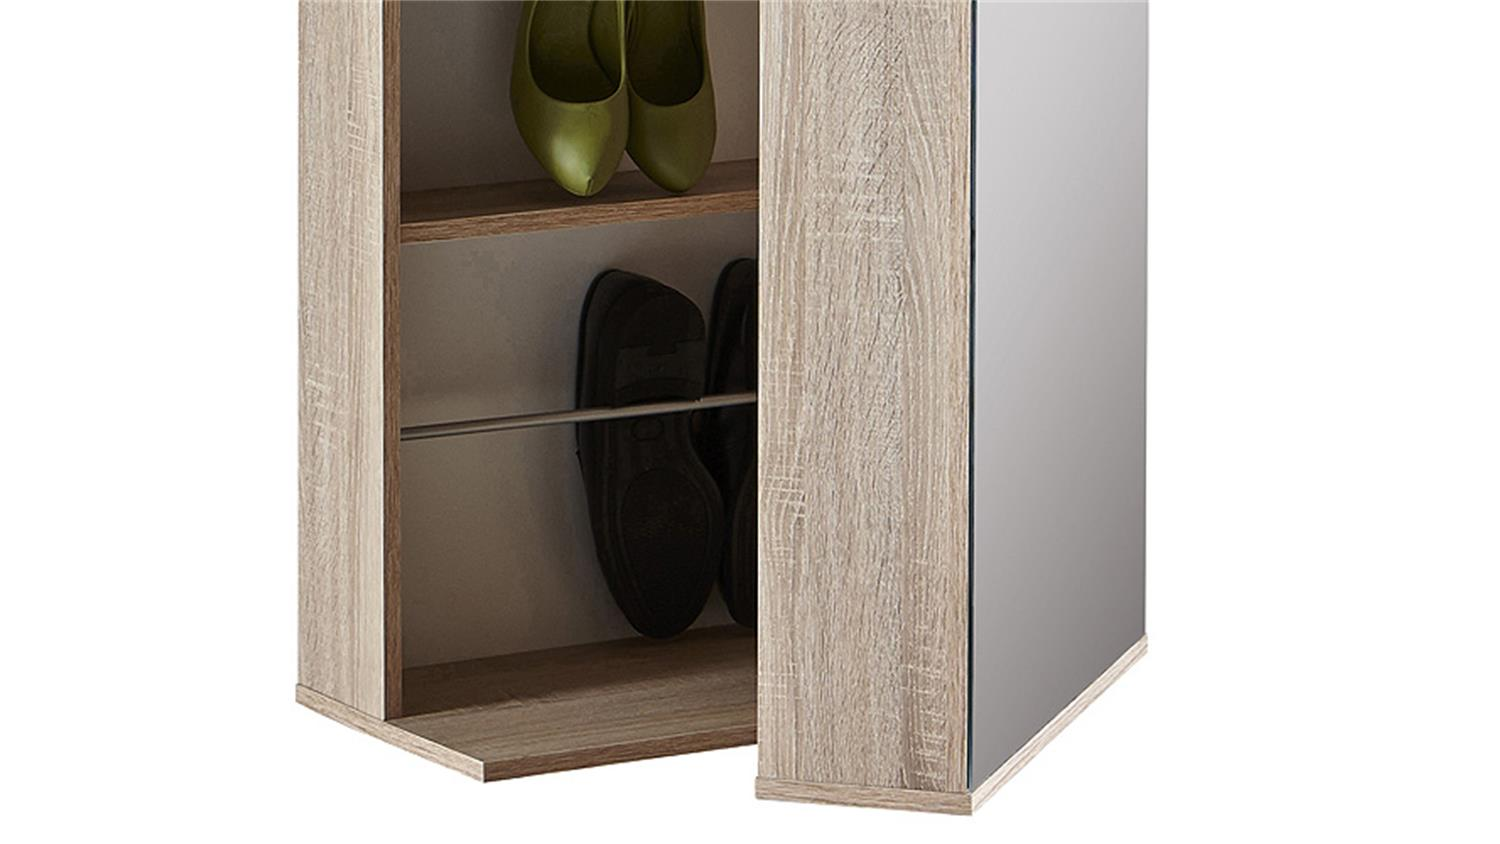 schuhschrank ballerina garderobe sonoma eiche mit spiegel. Black Bedroom Furniture Sets. Home Design Ideas